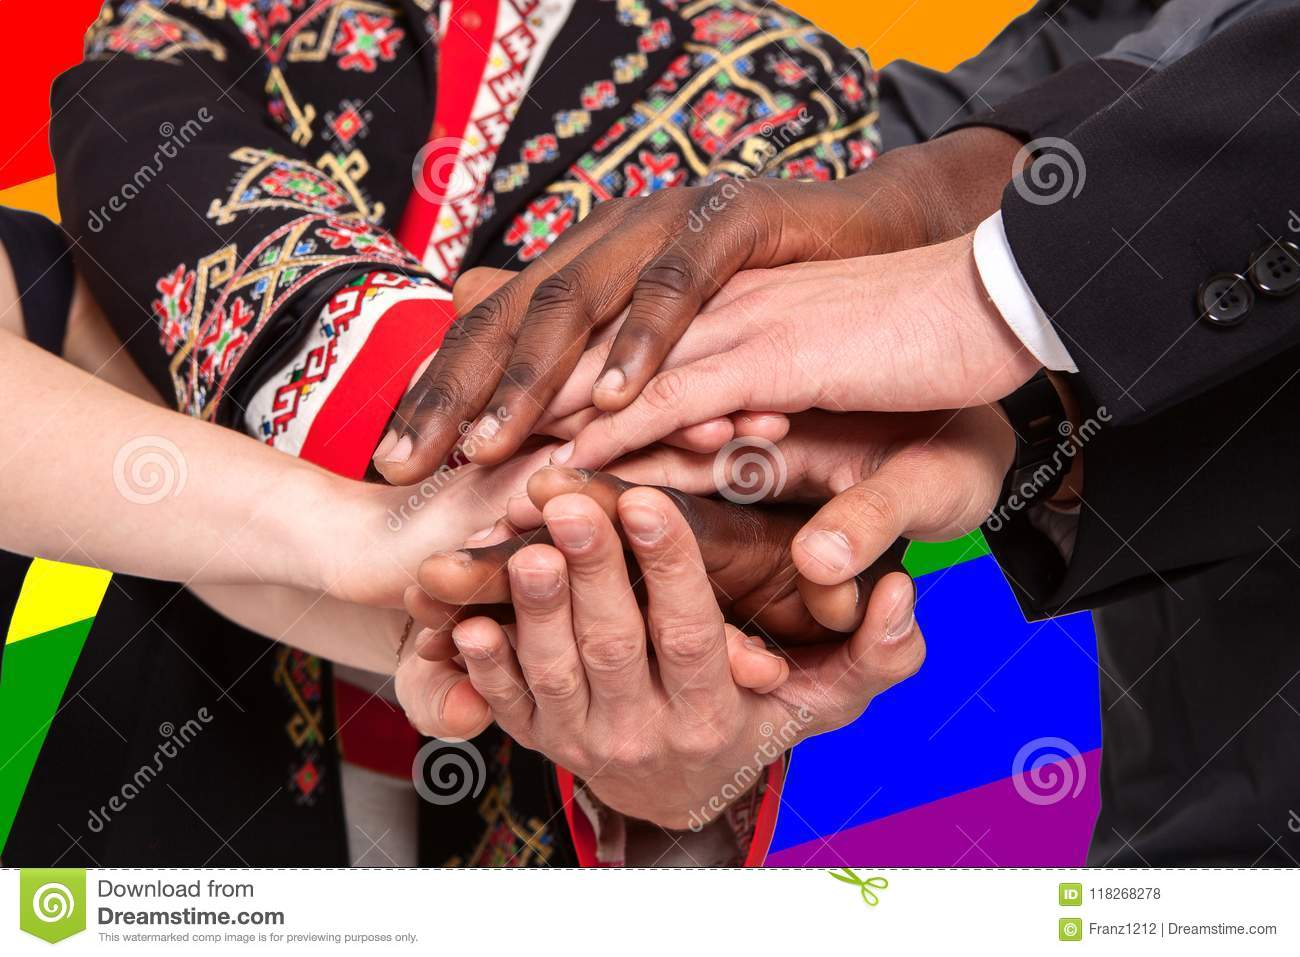 People Of Different Nationalities Hold Hands Against The